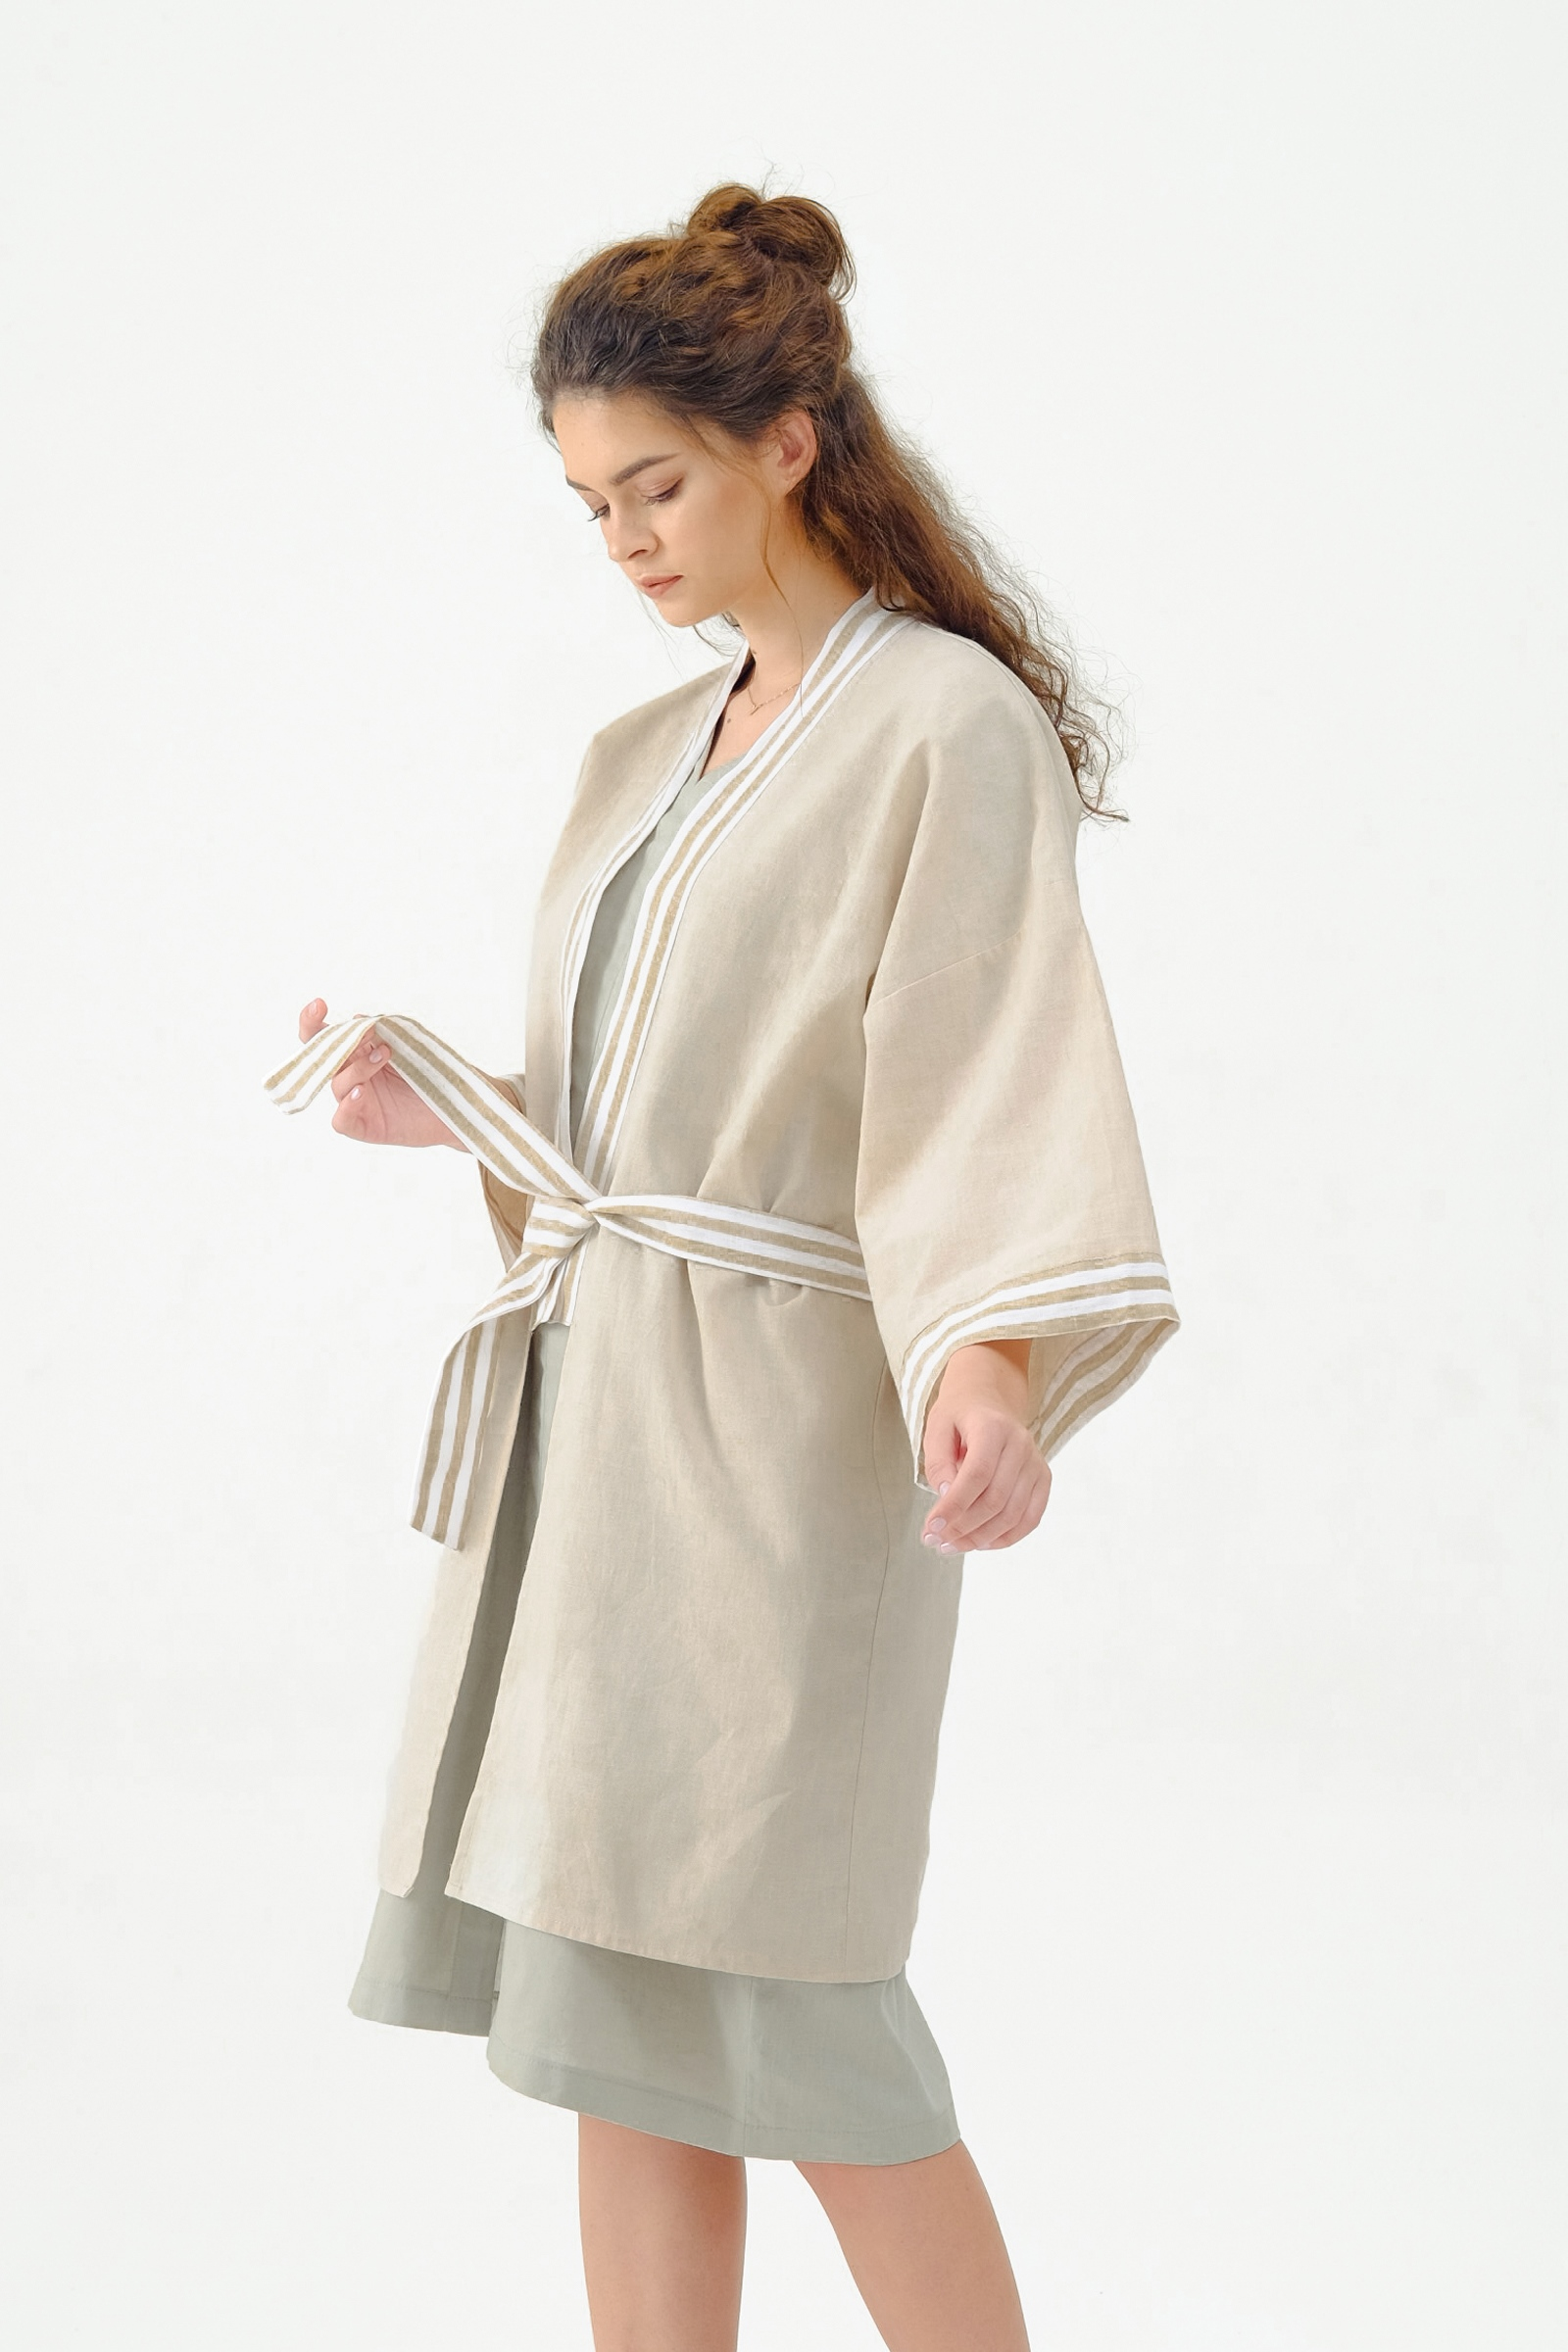 Picture of LIBBY LONG ROBE CREAM STRIPES X POURIE